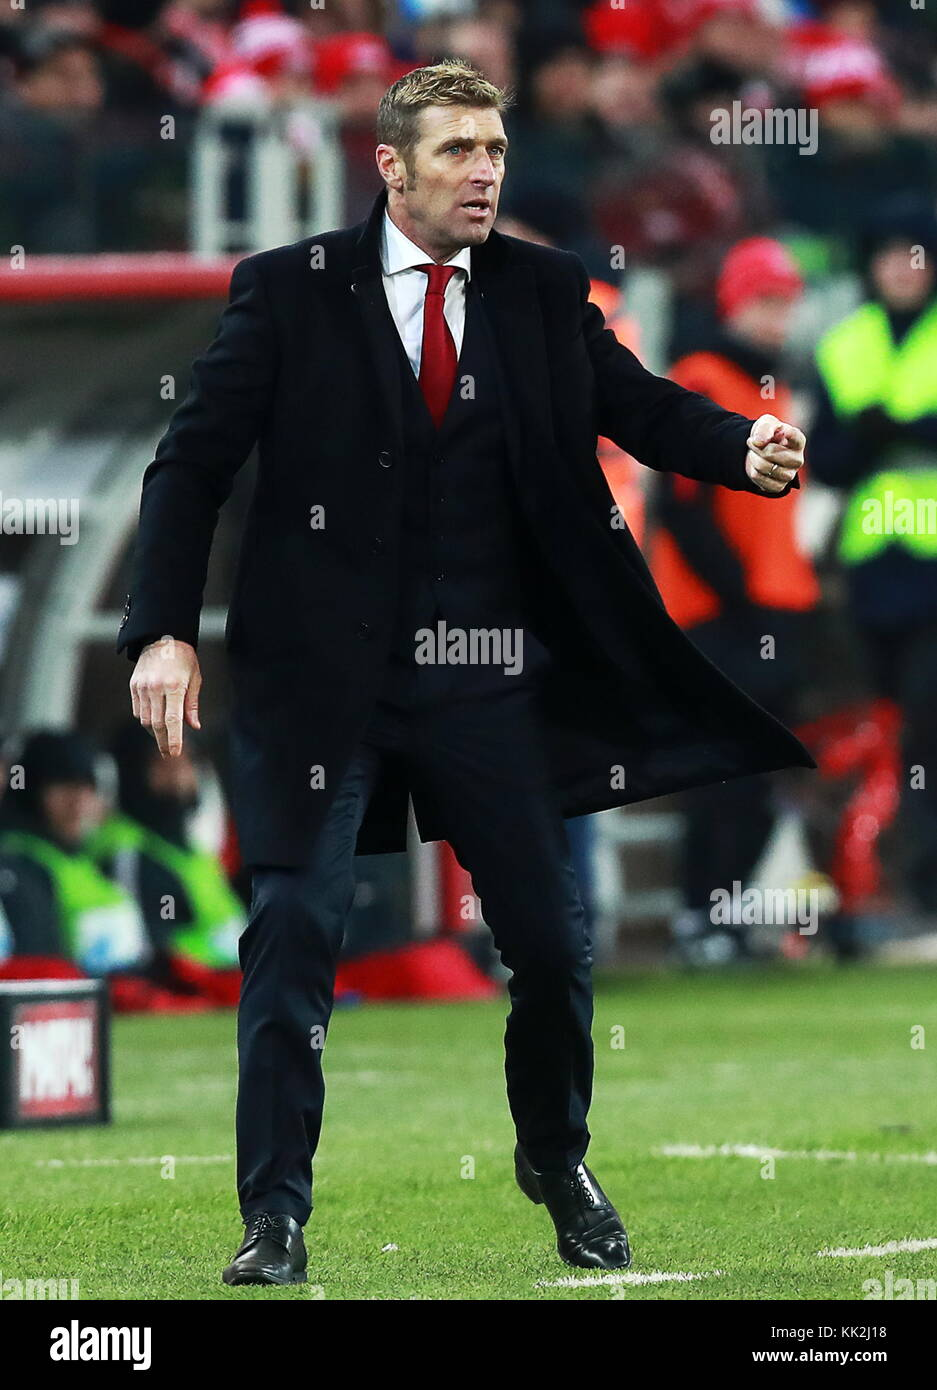 Moscow, Russia. 27th Nov, 2017. Spartak Moscow's manager Massimo Carrera in the 2017/2018 Russian Premier League - Stock Image